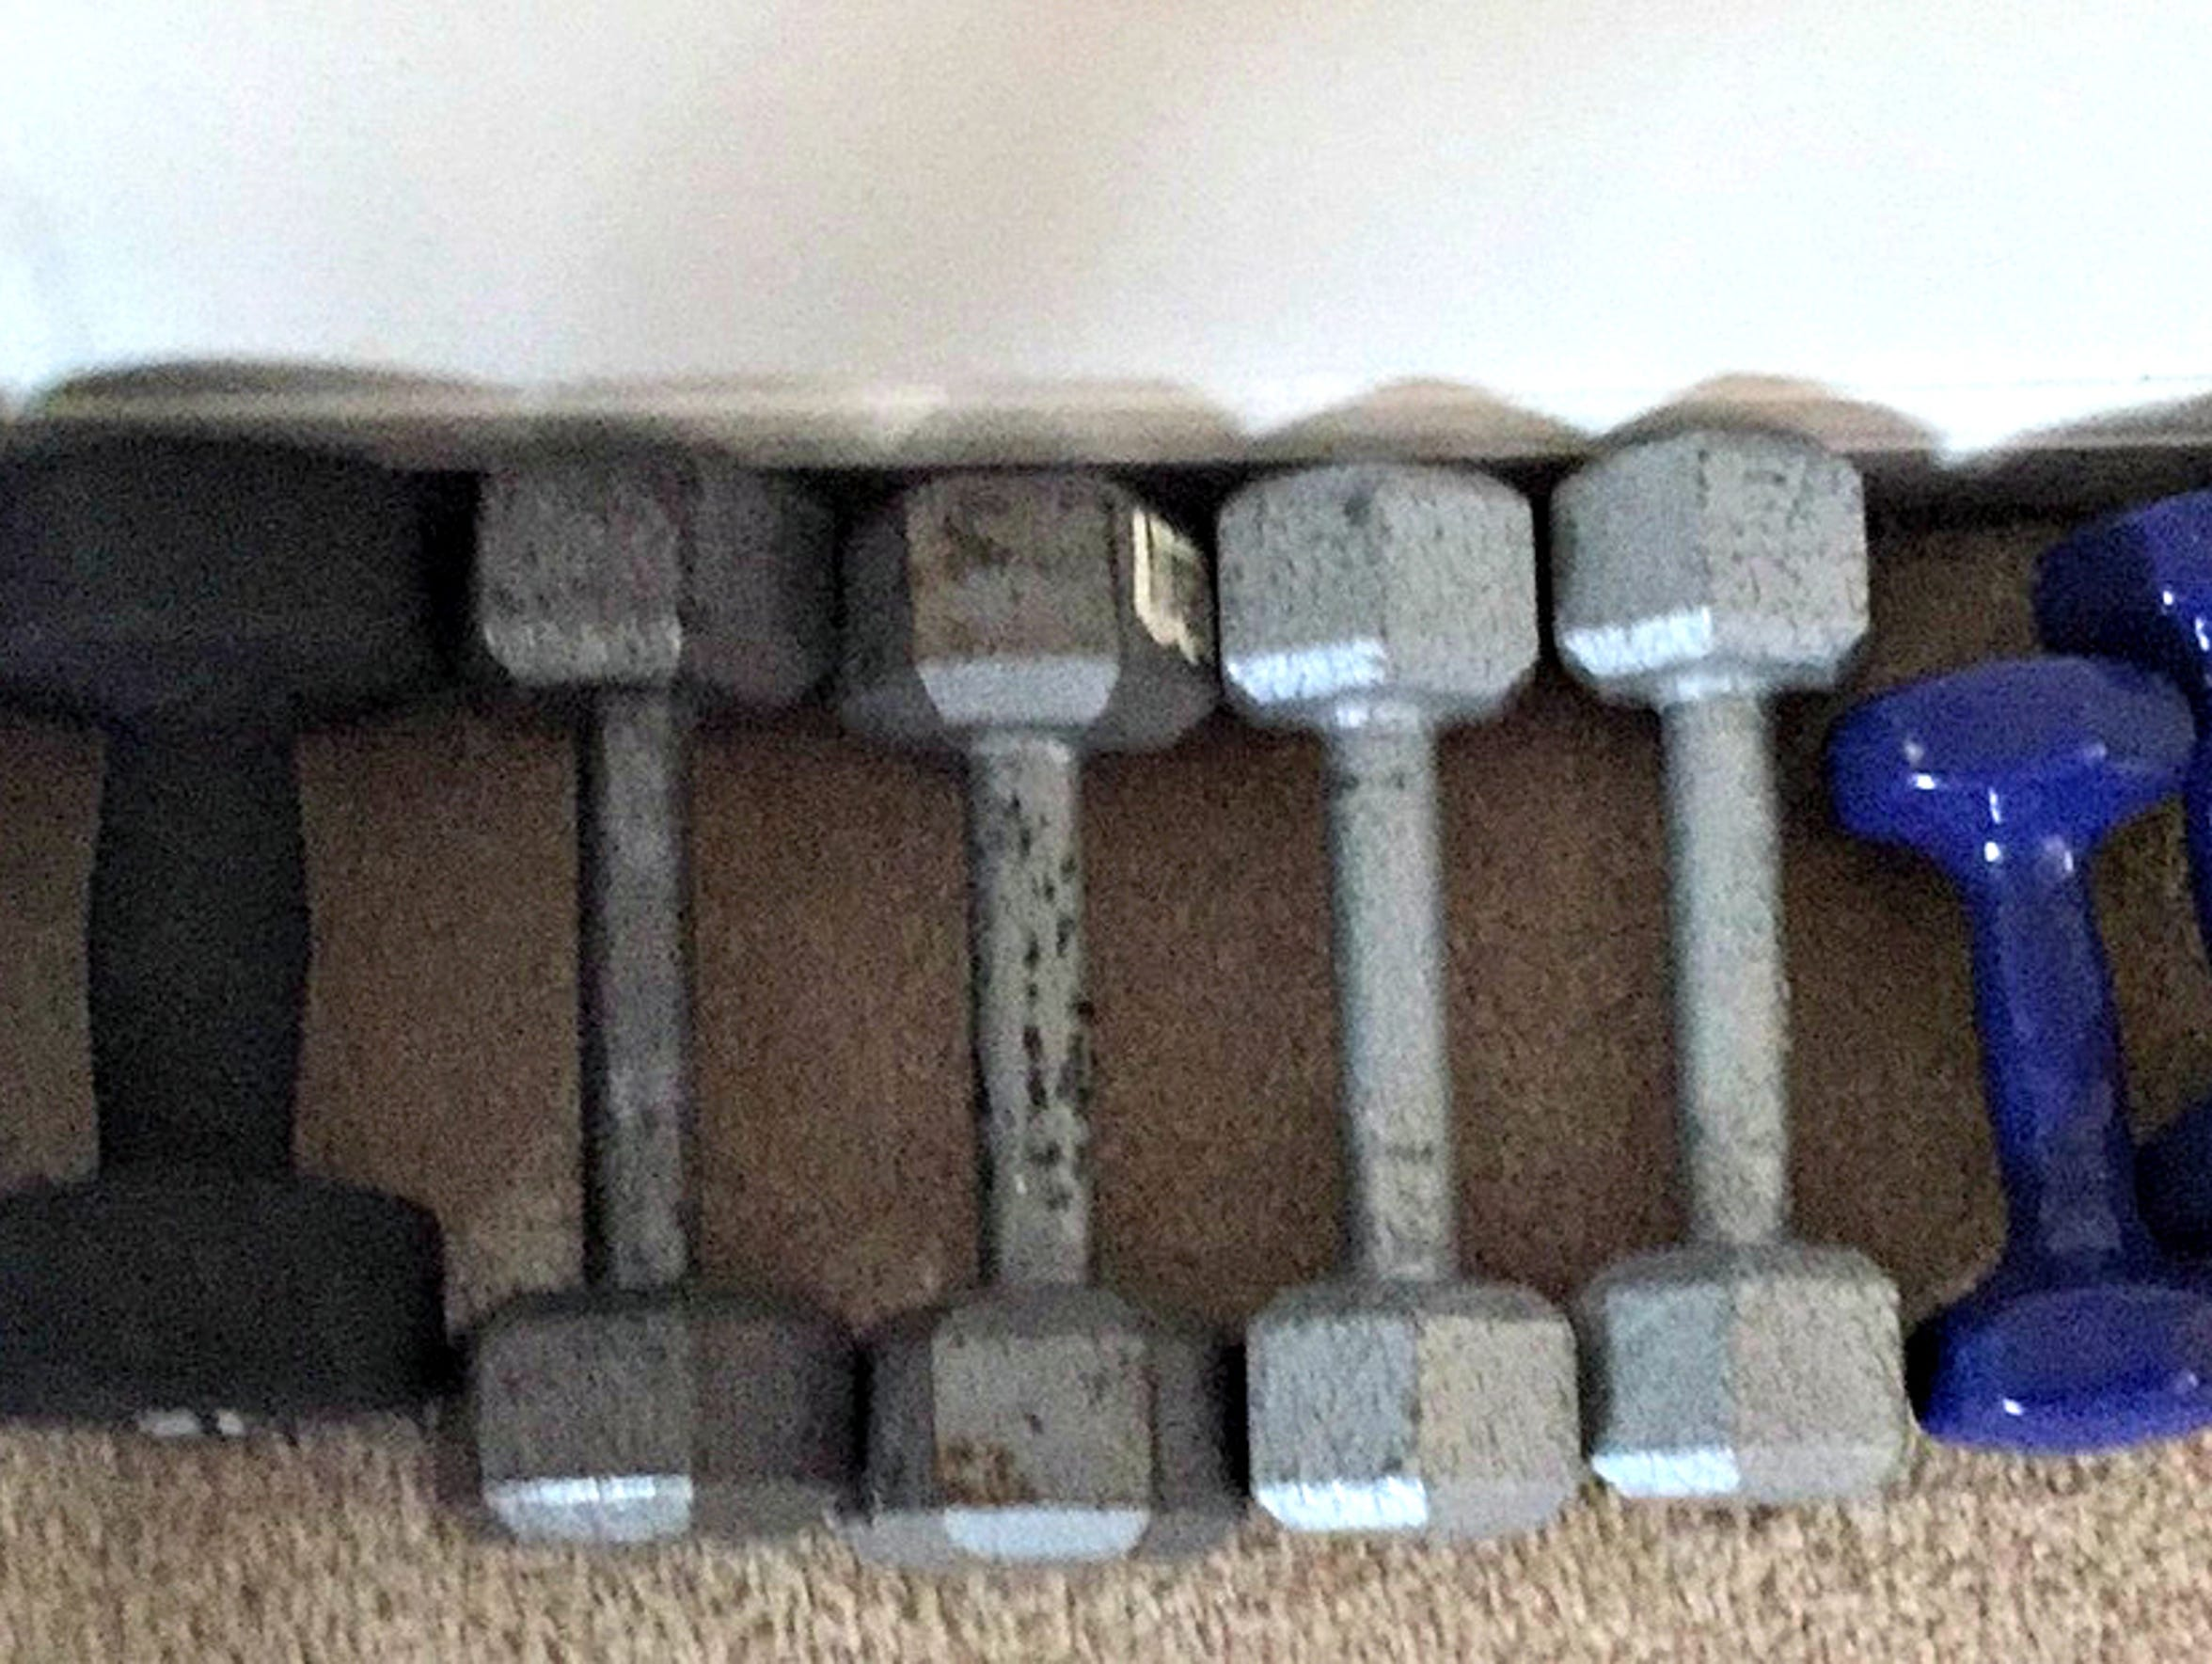 Dumbbells given to obese columnist Daniel Finney are